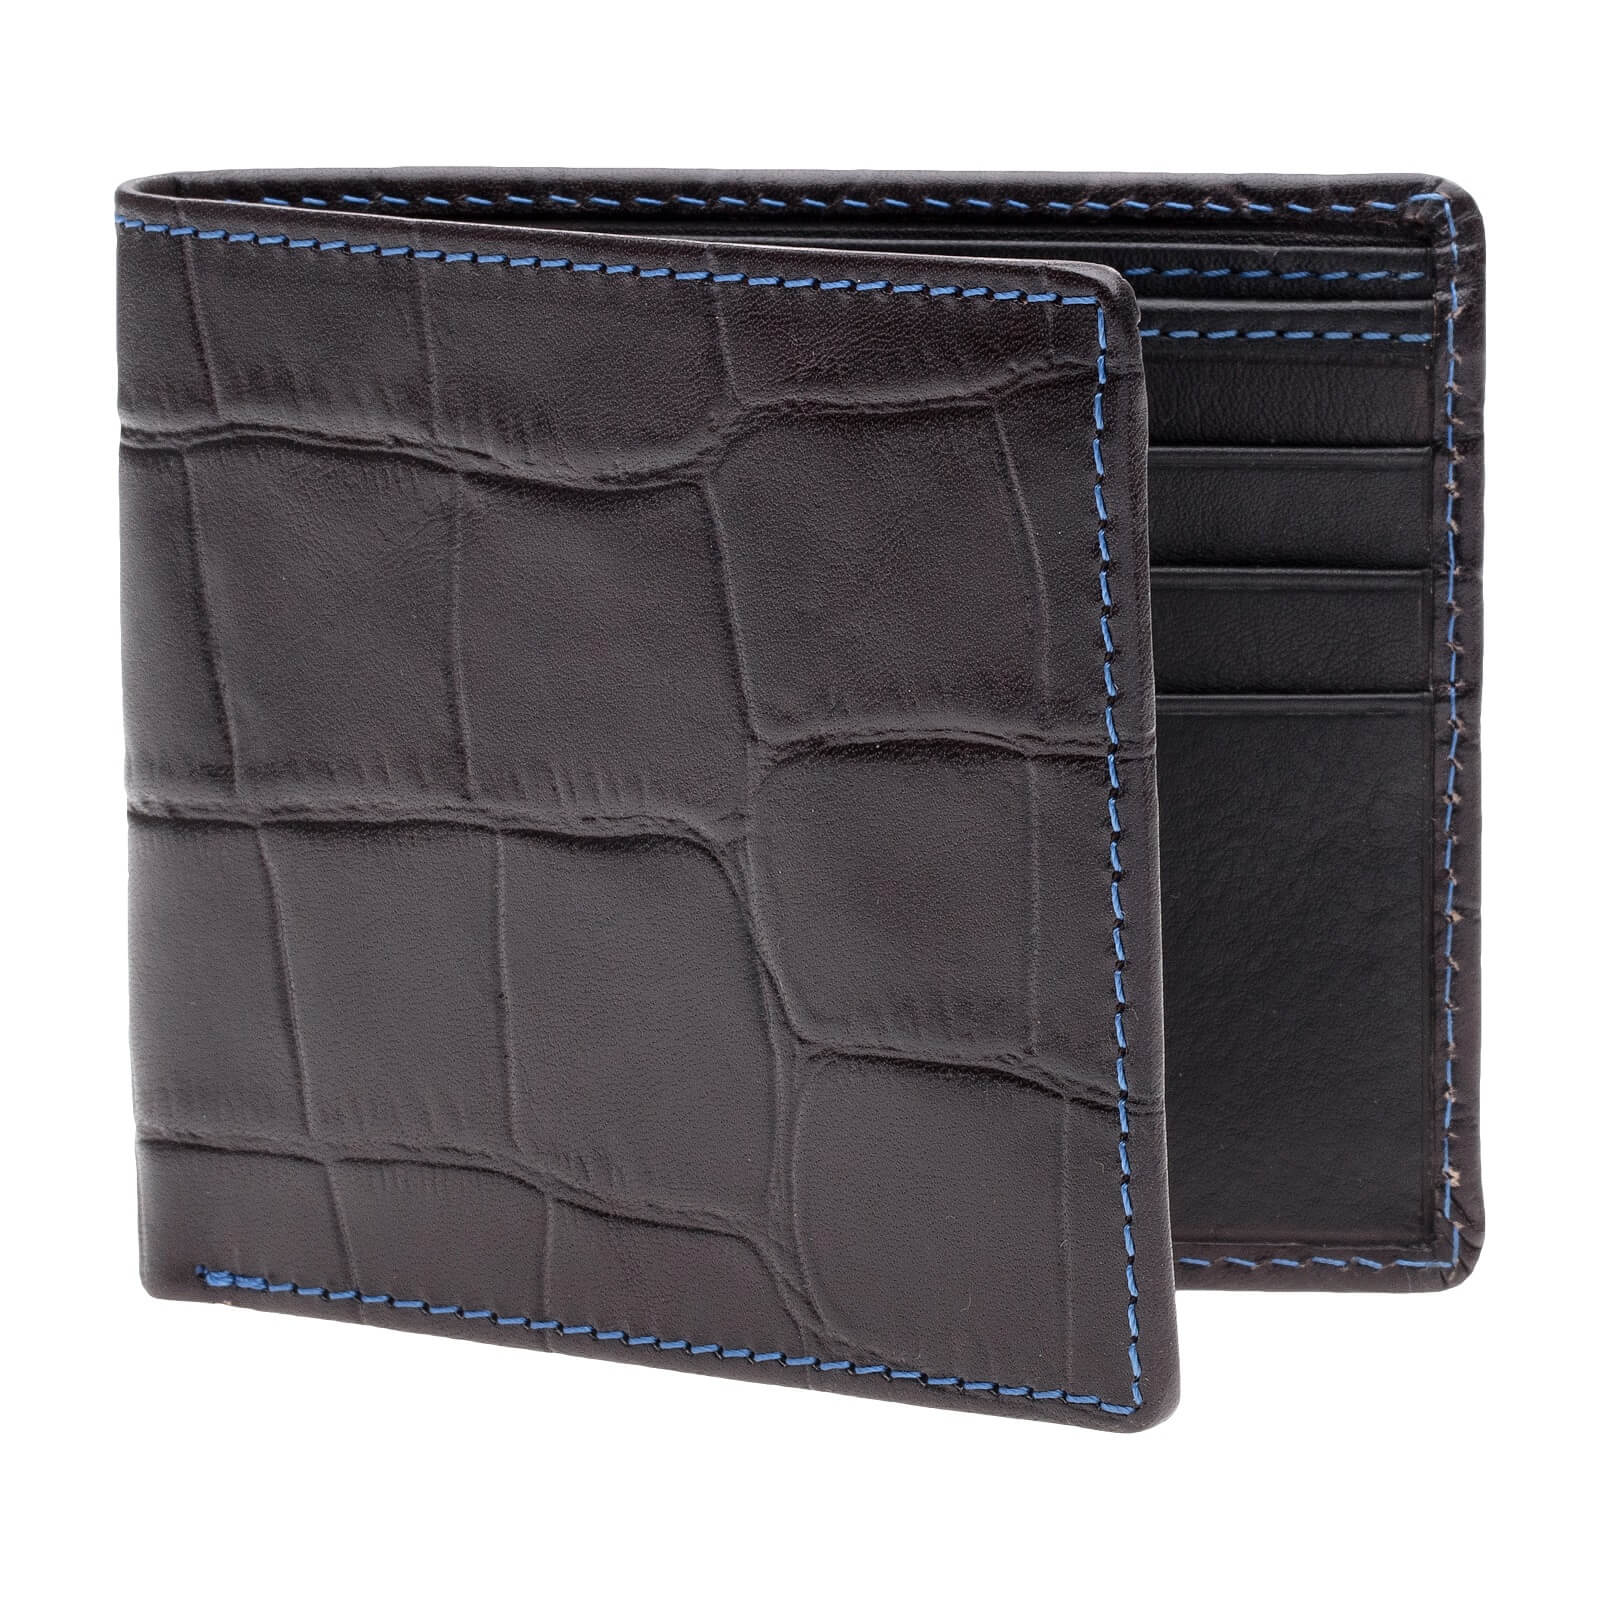 Charcoal Mock Gator Vegetable Tan Leather Wallet - Cobalt / Charcoal / One Size | Mens Fashion & Leather Goods by Roger Ximenez